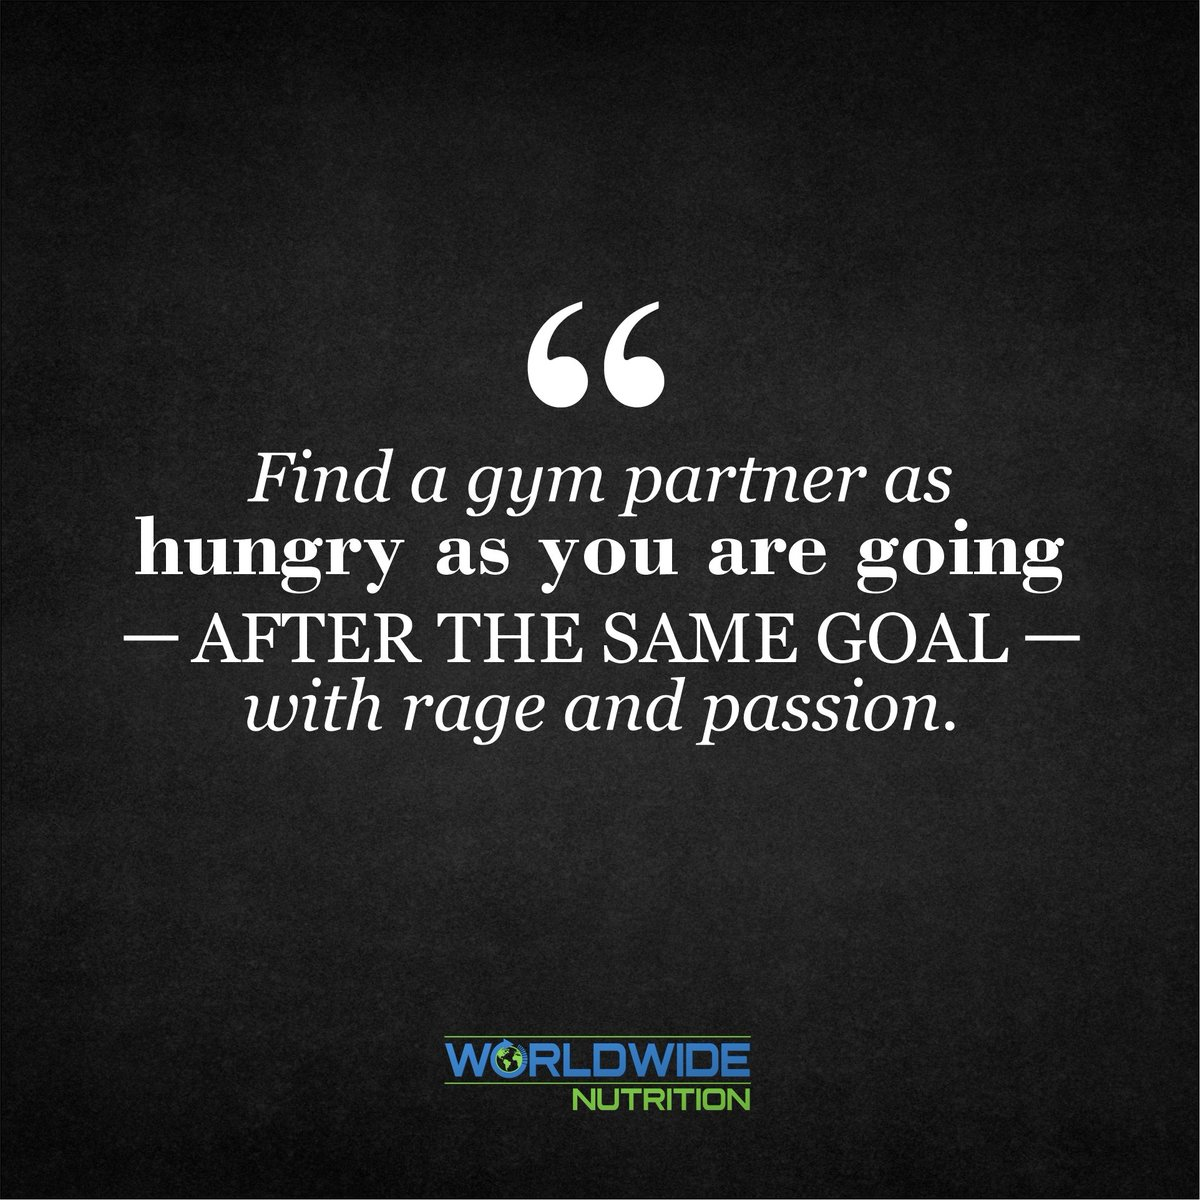 Tag that gym partner 💪 . #nutrition #lakepark #lakeparknutrition #palmbeach #lakeparkflorida #fitness #health #healthylifestyle #healthy #dietarysupplements #supplement #weightloss #motivation #workout #gym #fit #wellness #lifestyle #fitnessmotivation #healthyliving